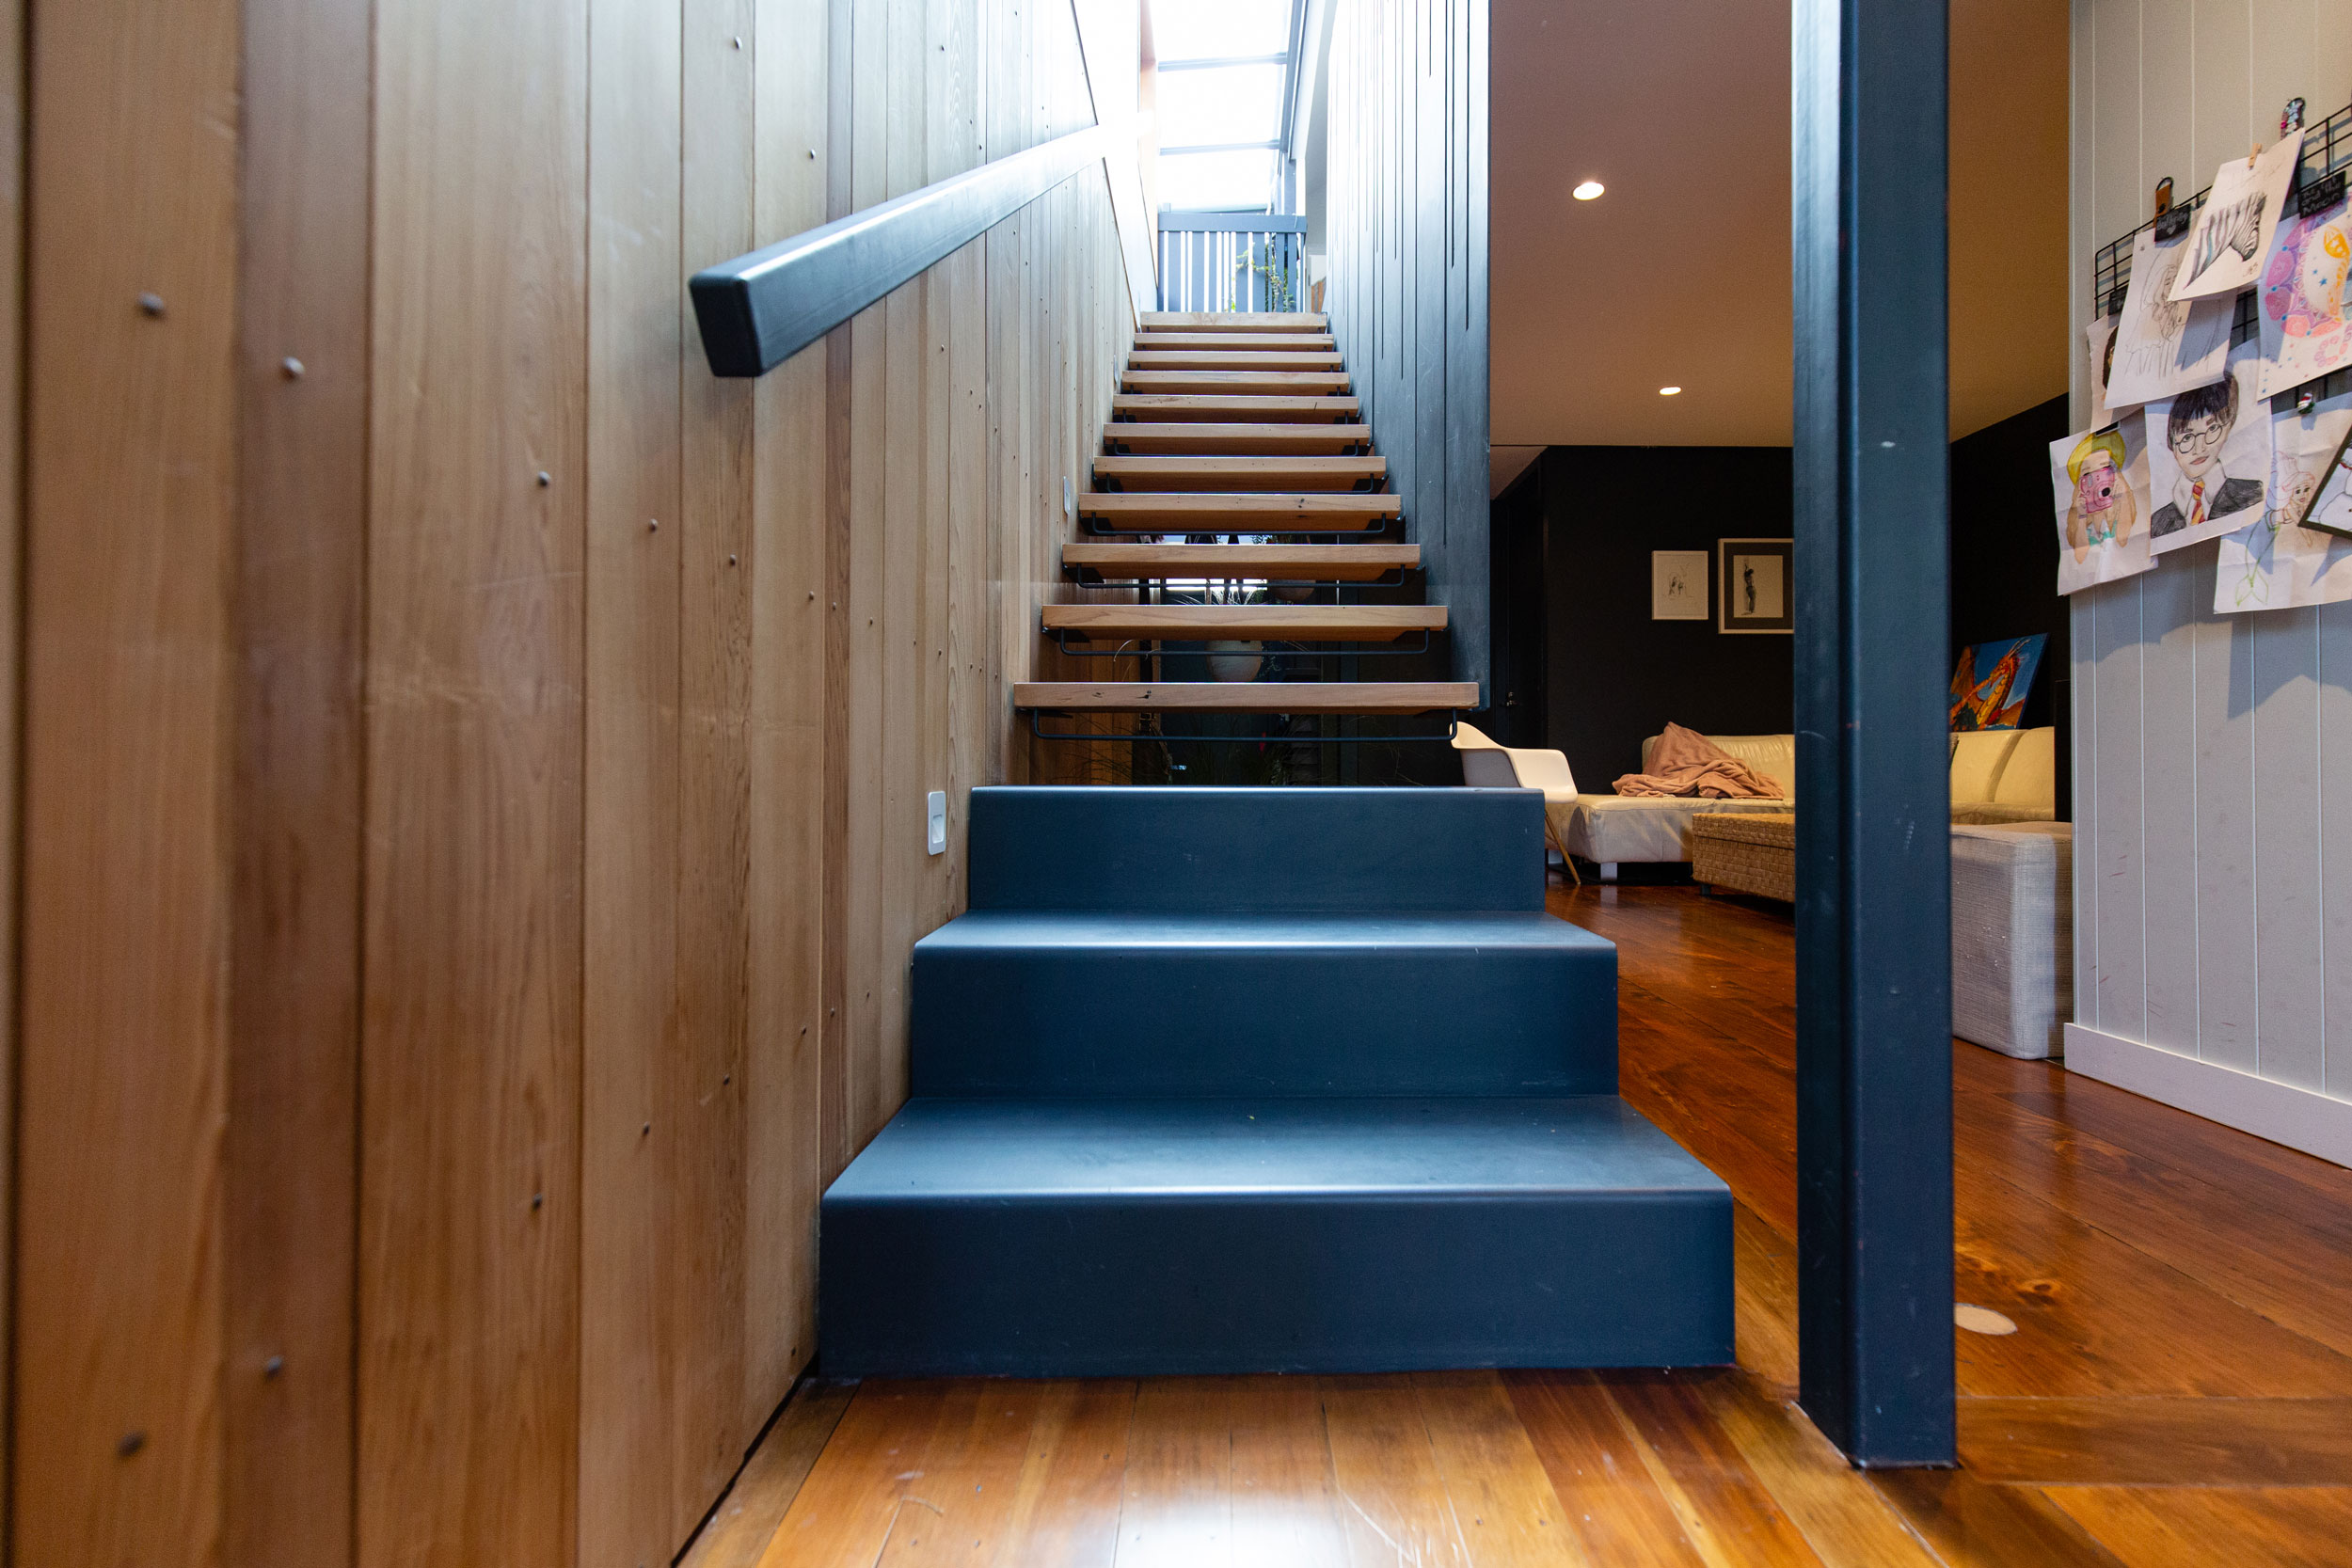 Floating staircase with timber treads and steel balustrade built by staircase design company Stairwo